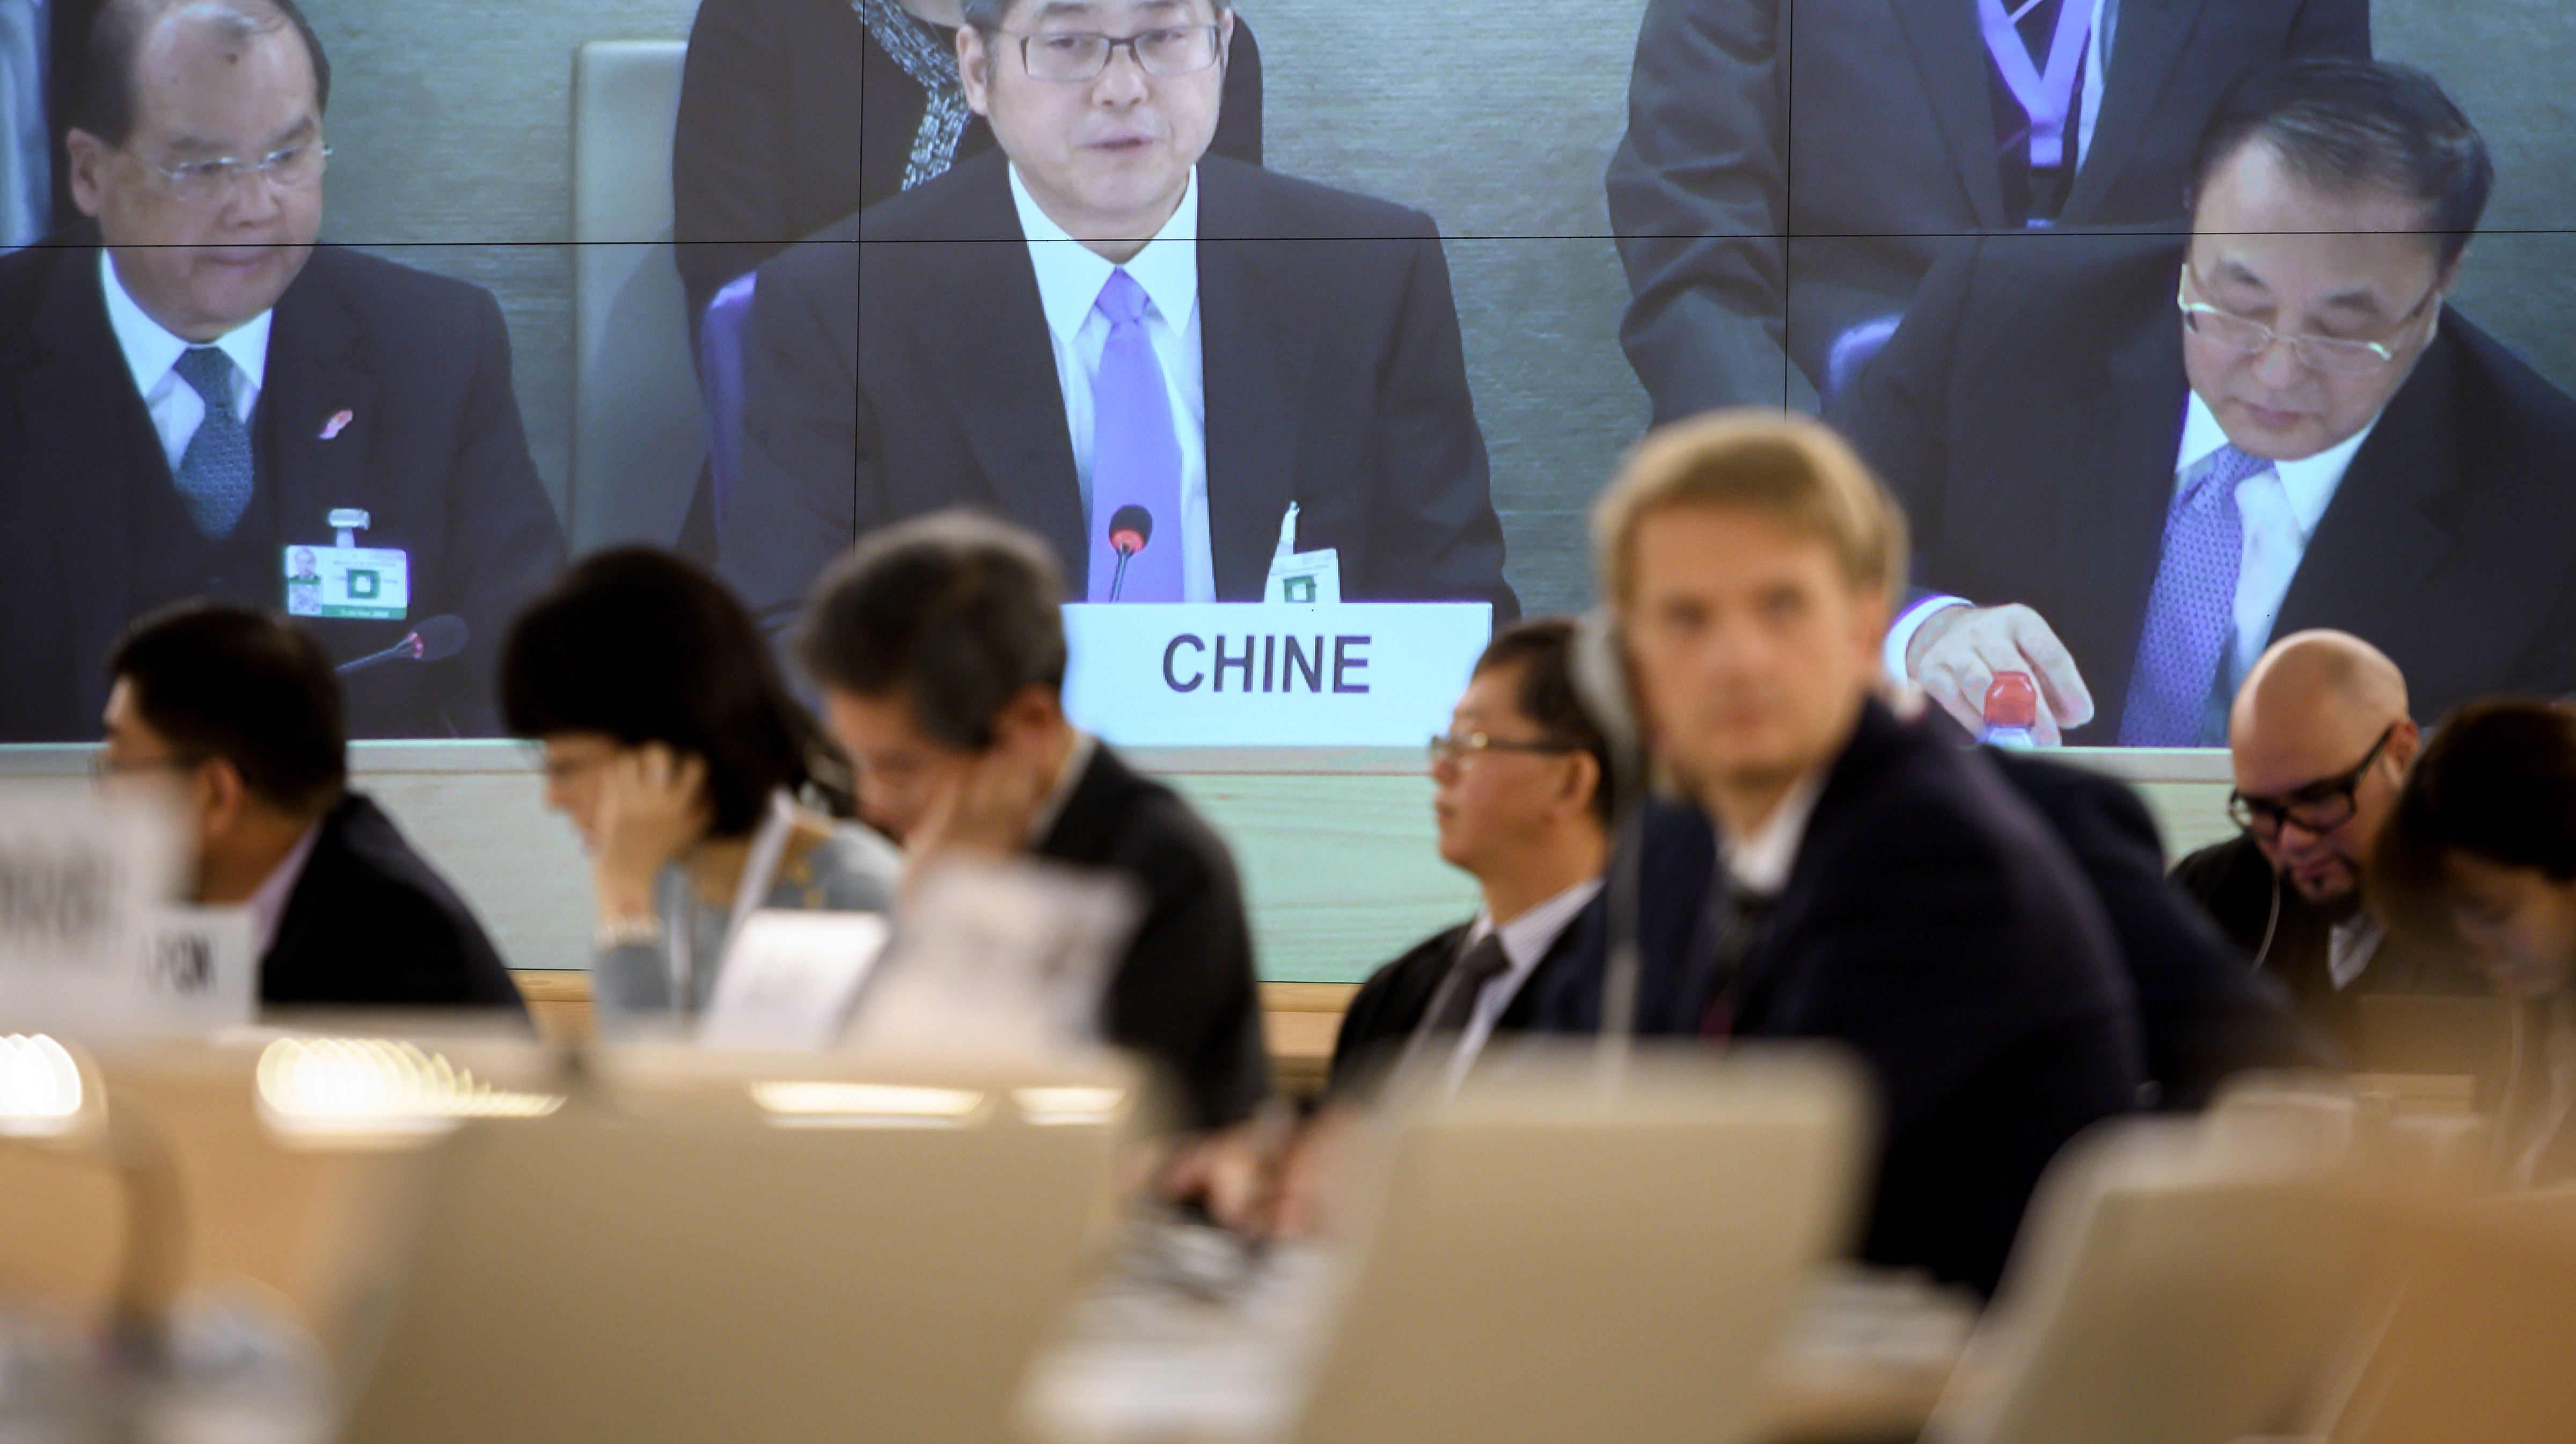 Chinese Vice Minister of Foreign Affairs Le Yucheng delivers a speech before the UN Human Rights Council prior to the Universal Periodic Review of China in Geneva (Getty/Fabrice Coffrini)